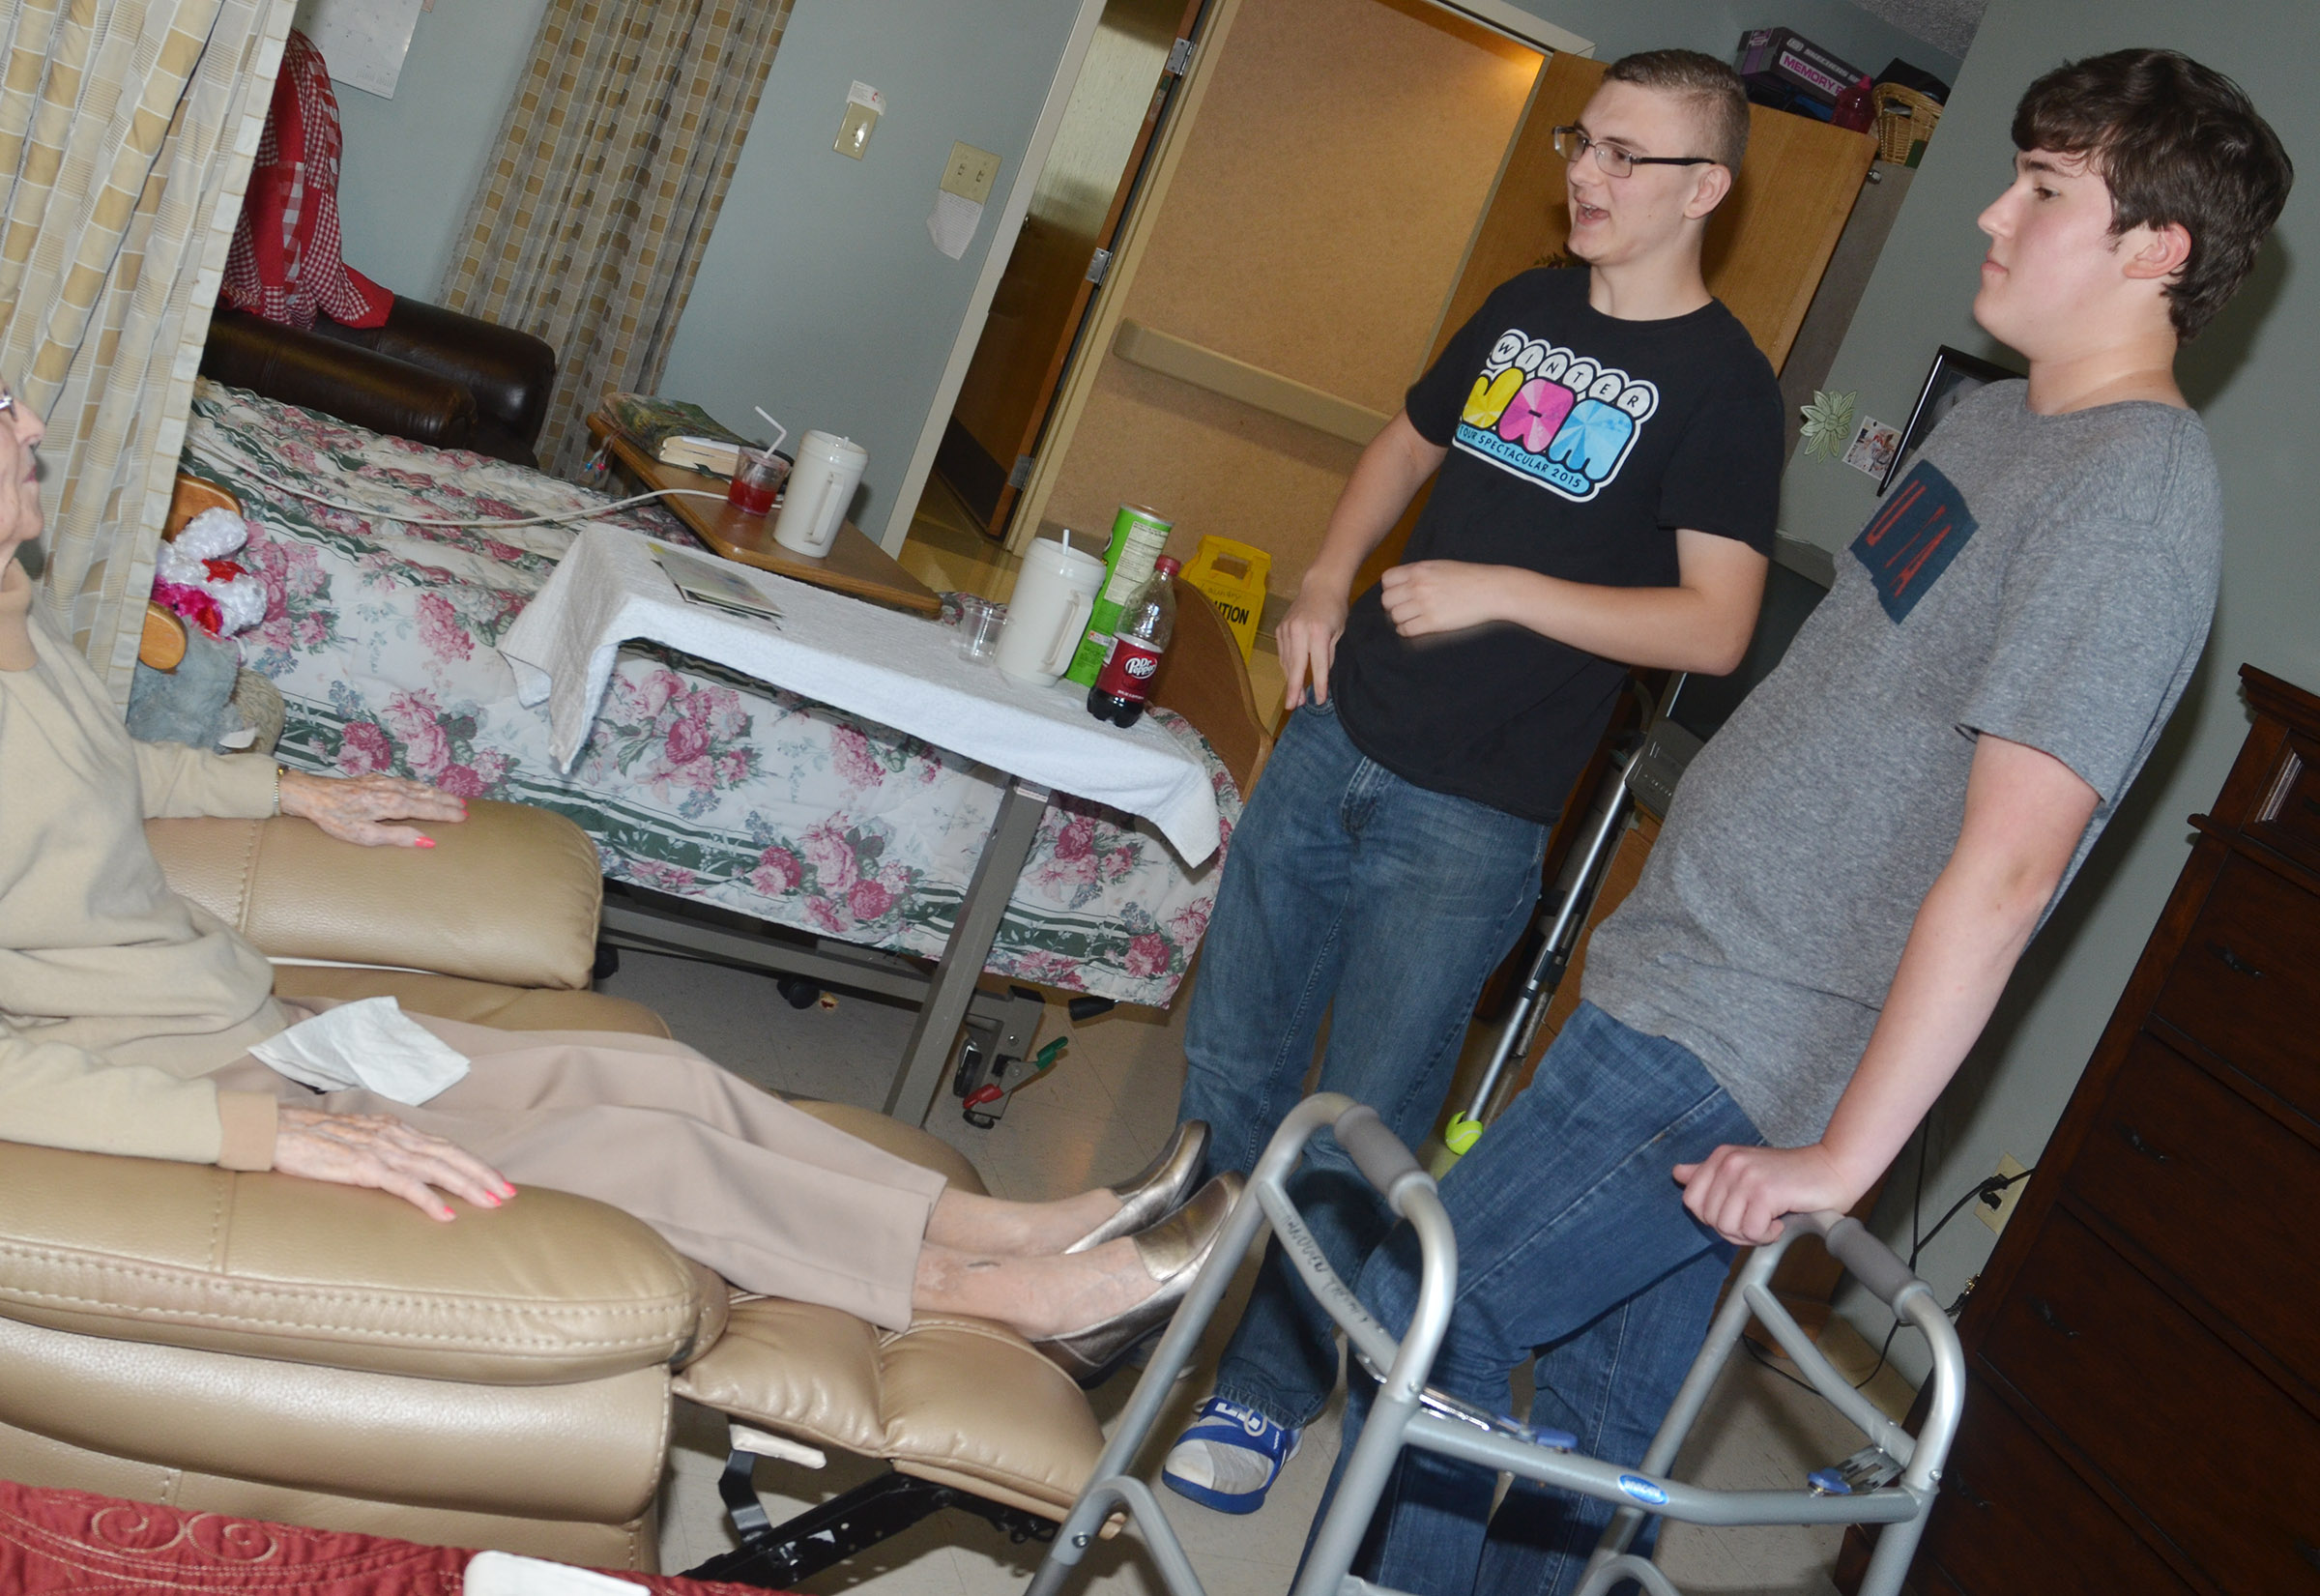 CHS seniors Ben Rafferty, at left, and Zack Settle visit with Grandview residents.